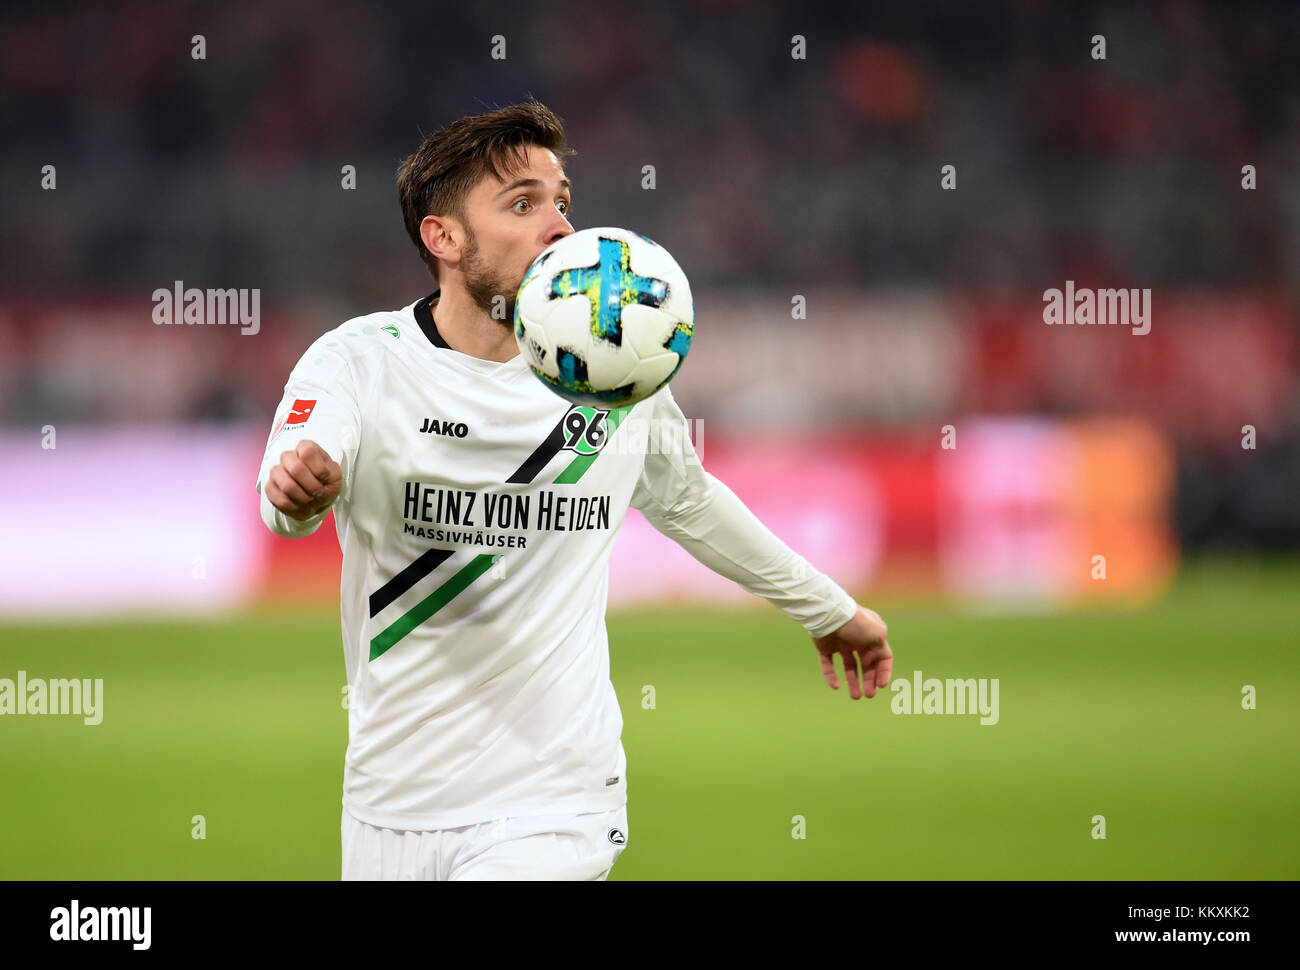 Munich, Germany. 2nd Dec, 2017. Hanover's Julian Korb taking possession of the ball during the German Bundesliga - Stock Image